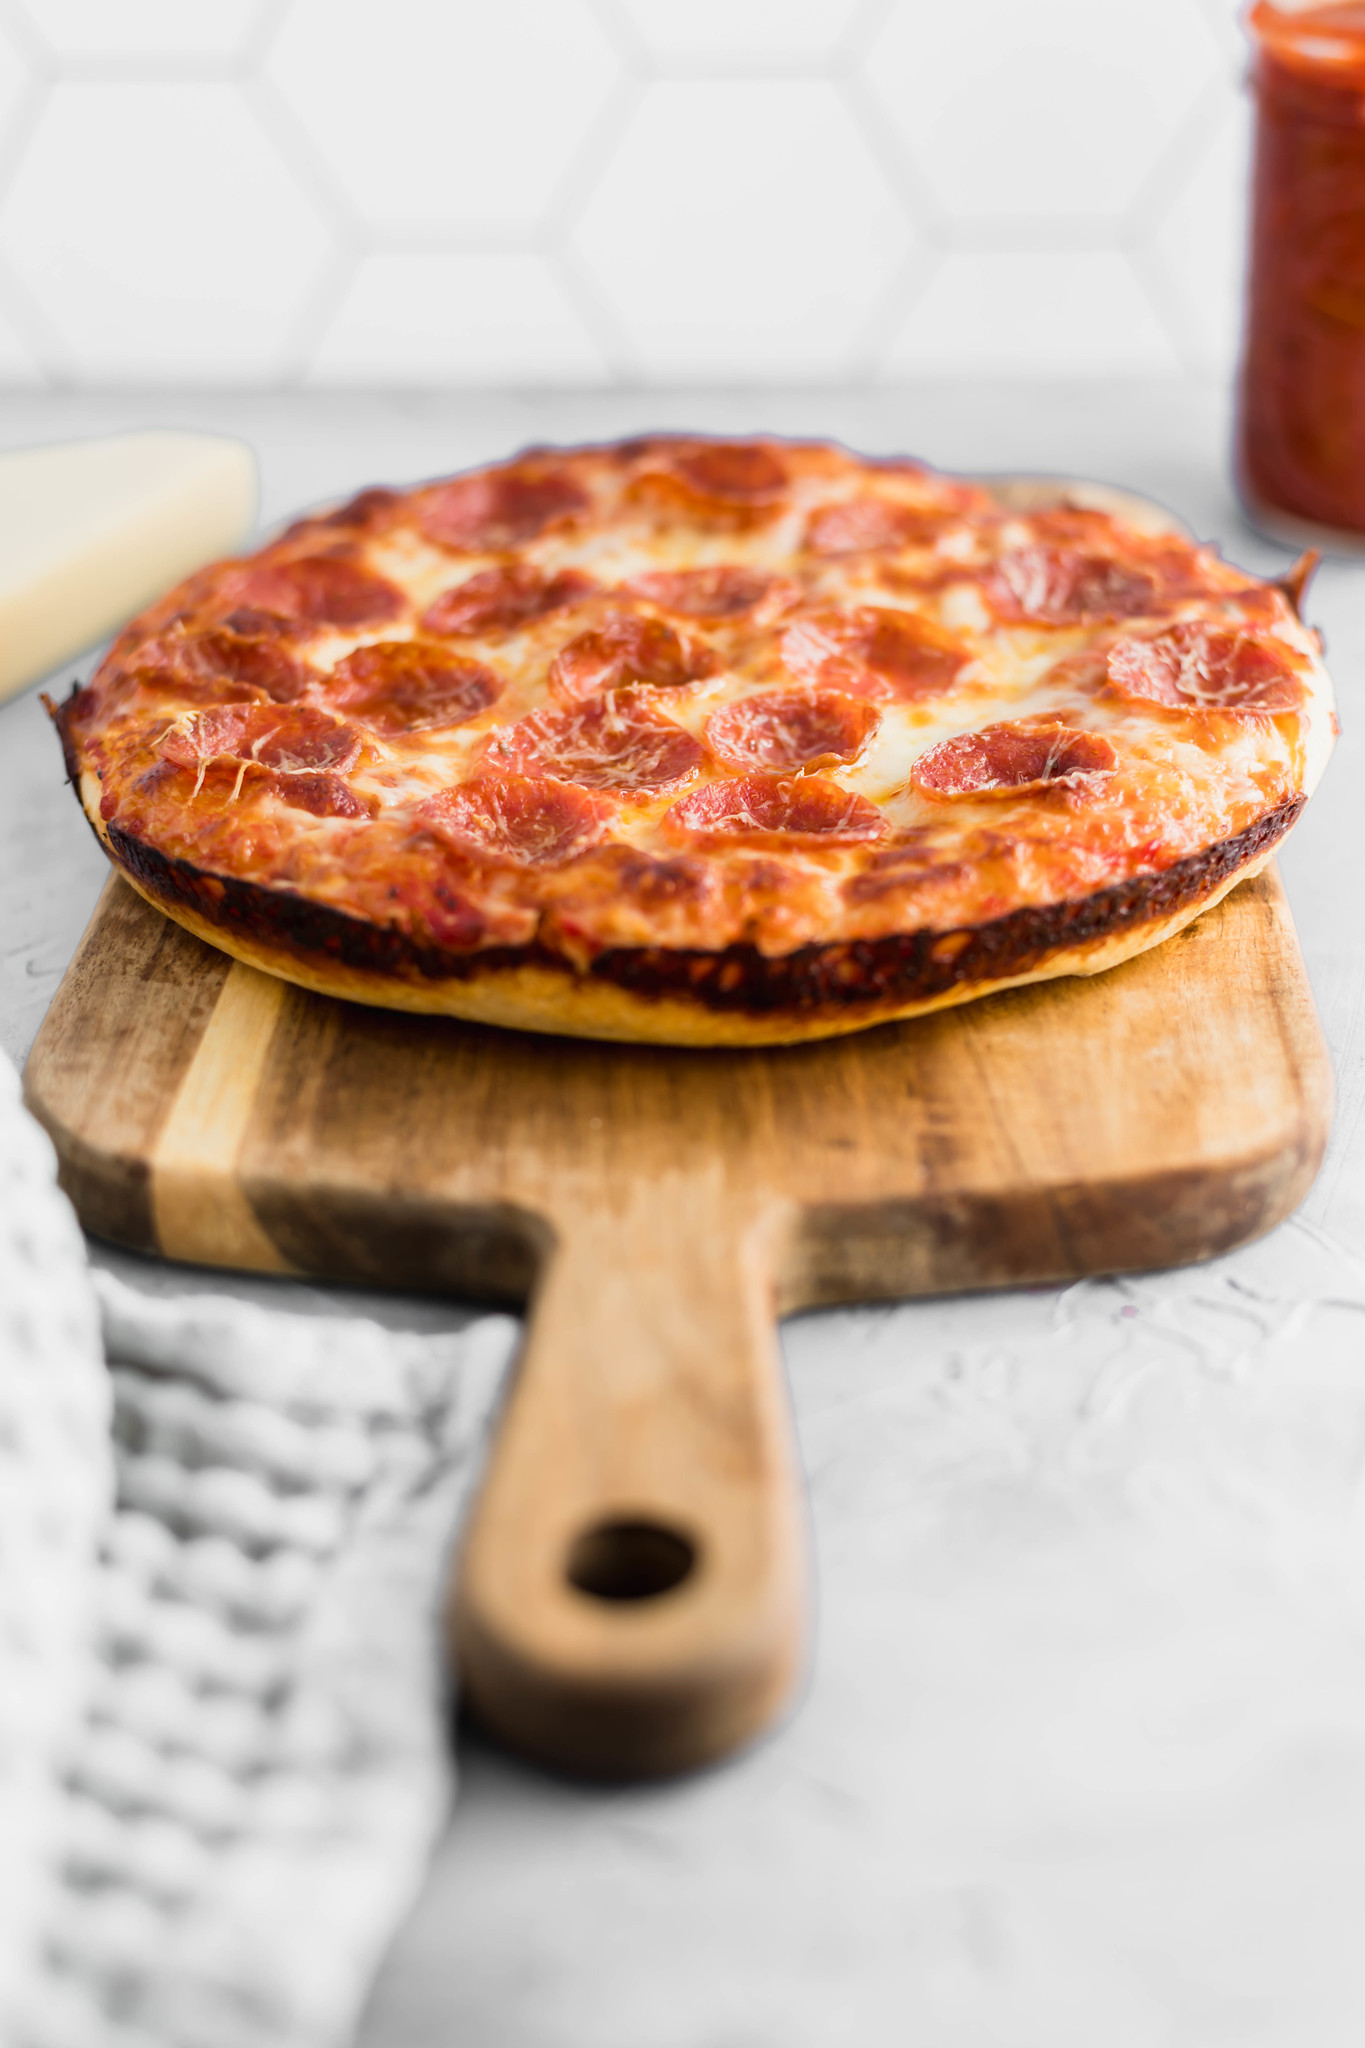 Movie night just got a whole lot better with this Cast Iron Skillet Pizza. It has the perfect crispy bottom and is topped with your favorite pizza toppings.